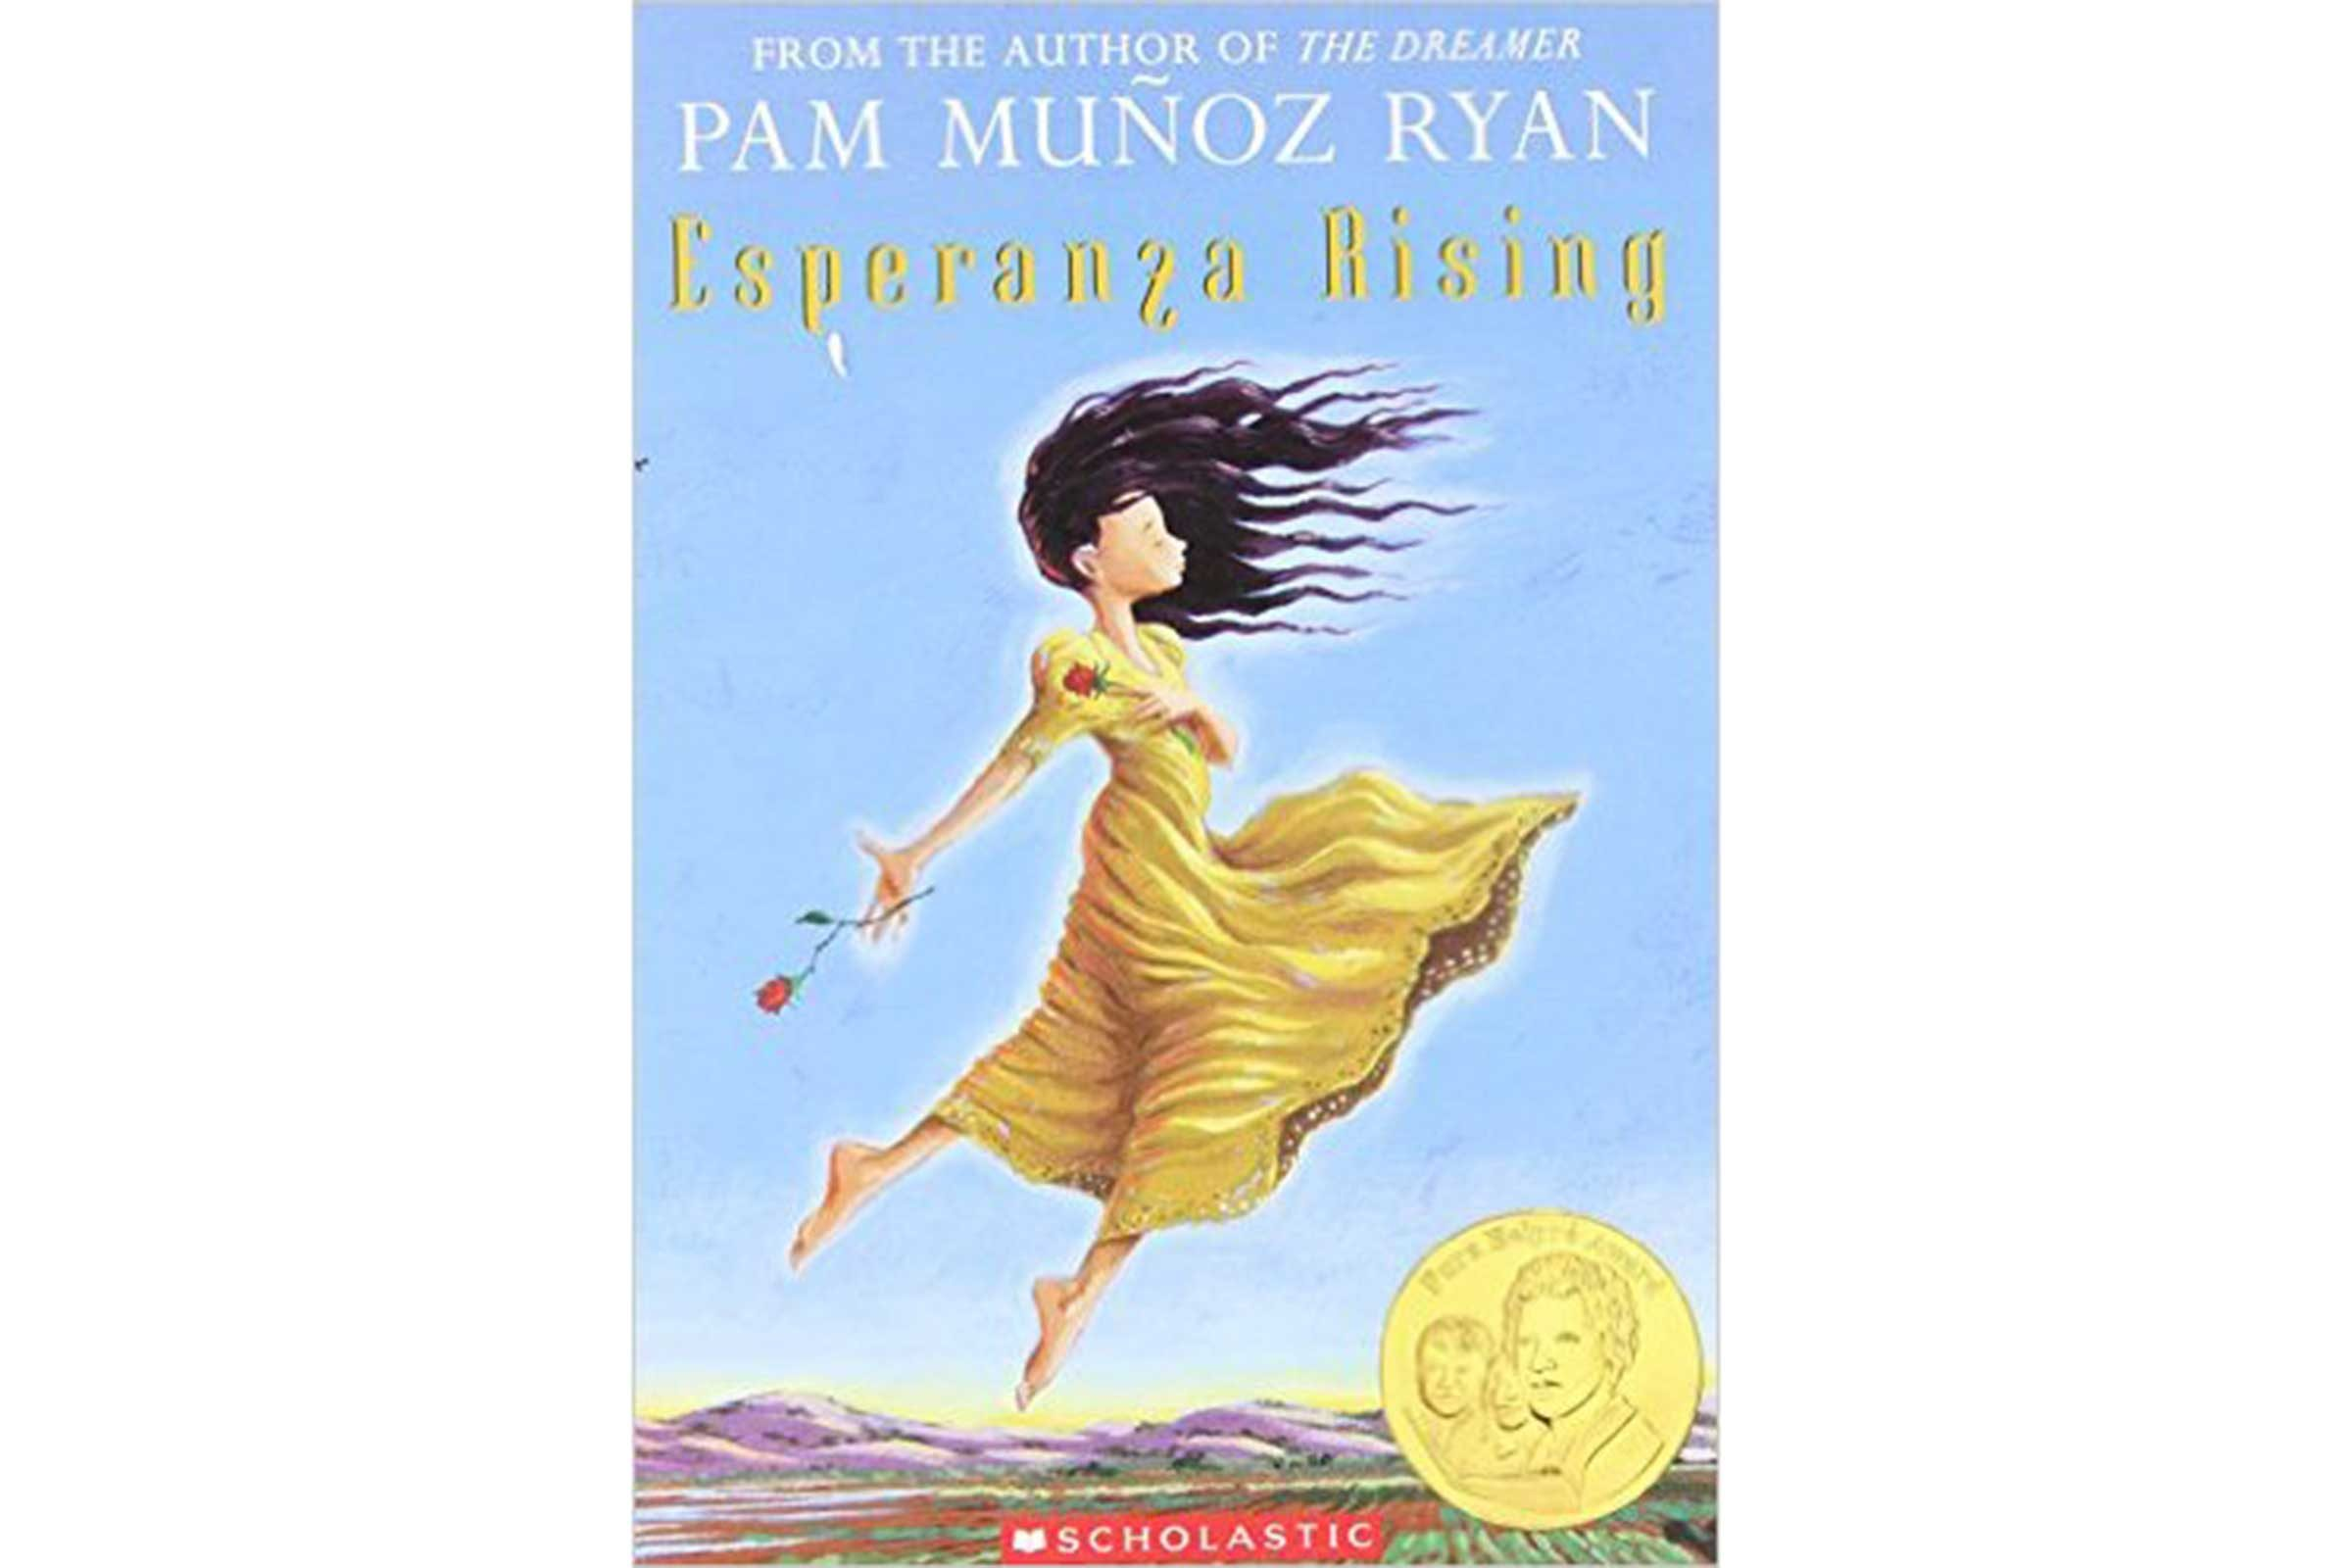 'Esperanza Rising' by Pam Munoz Ryan